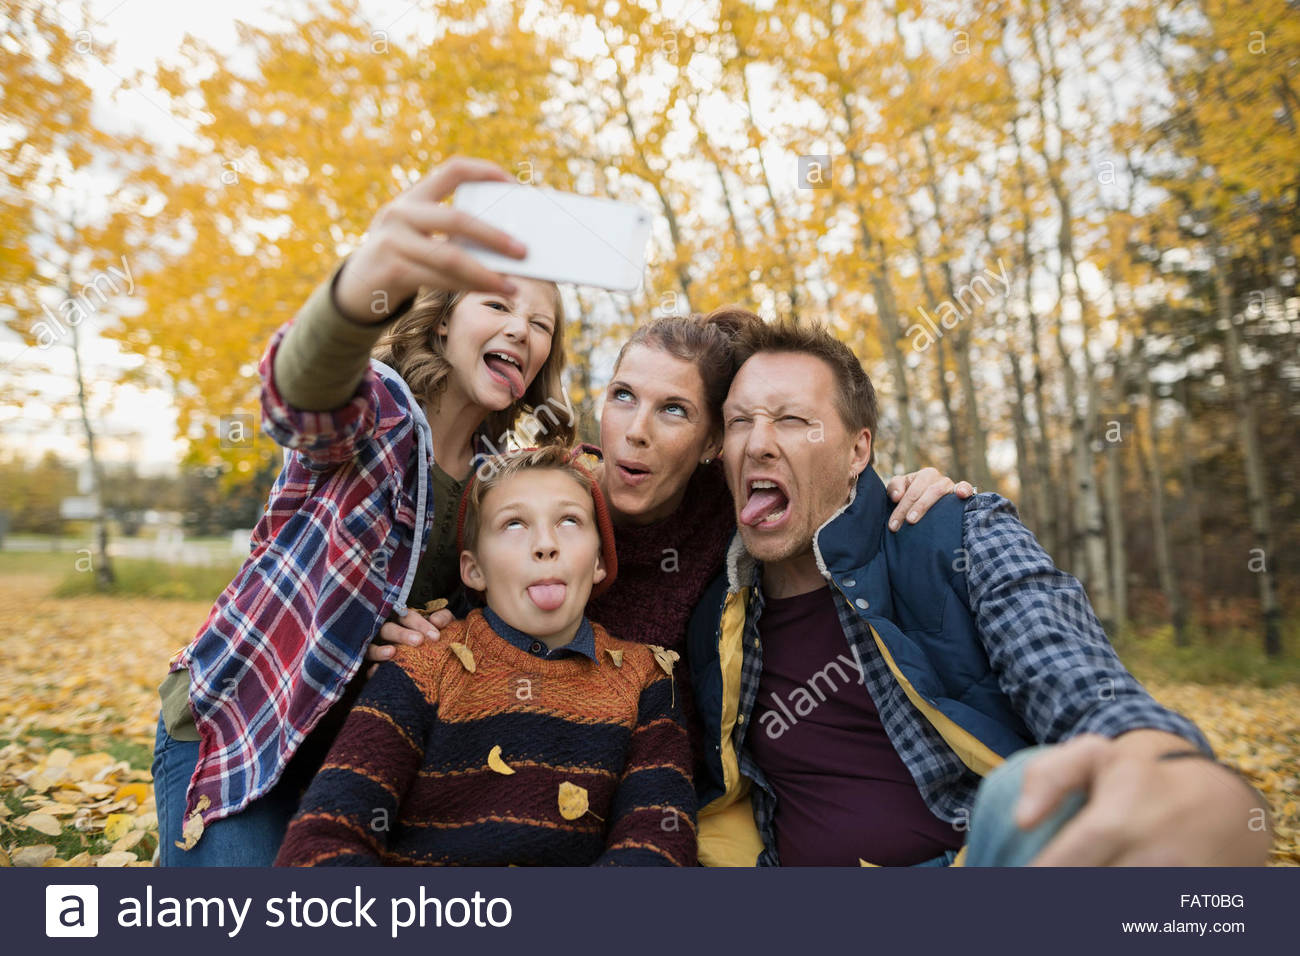 Silly family taking selfie making faces autumn park - Stock Image